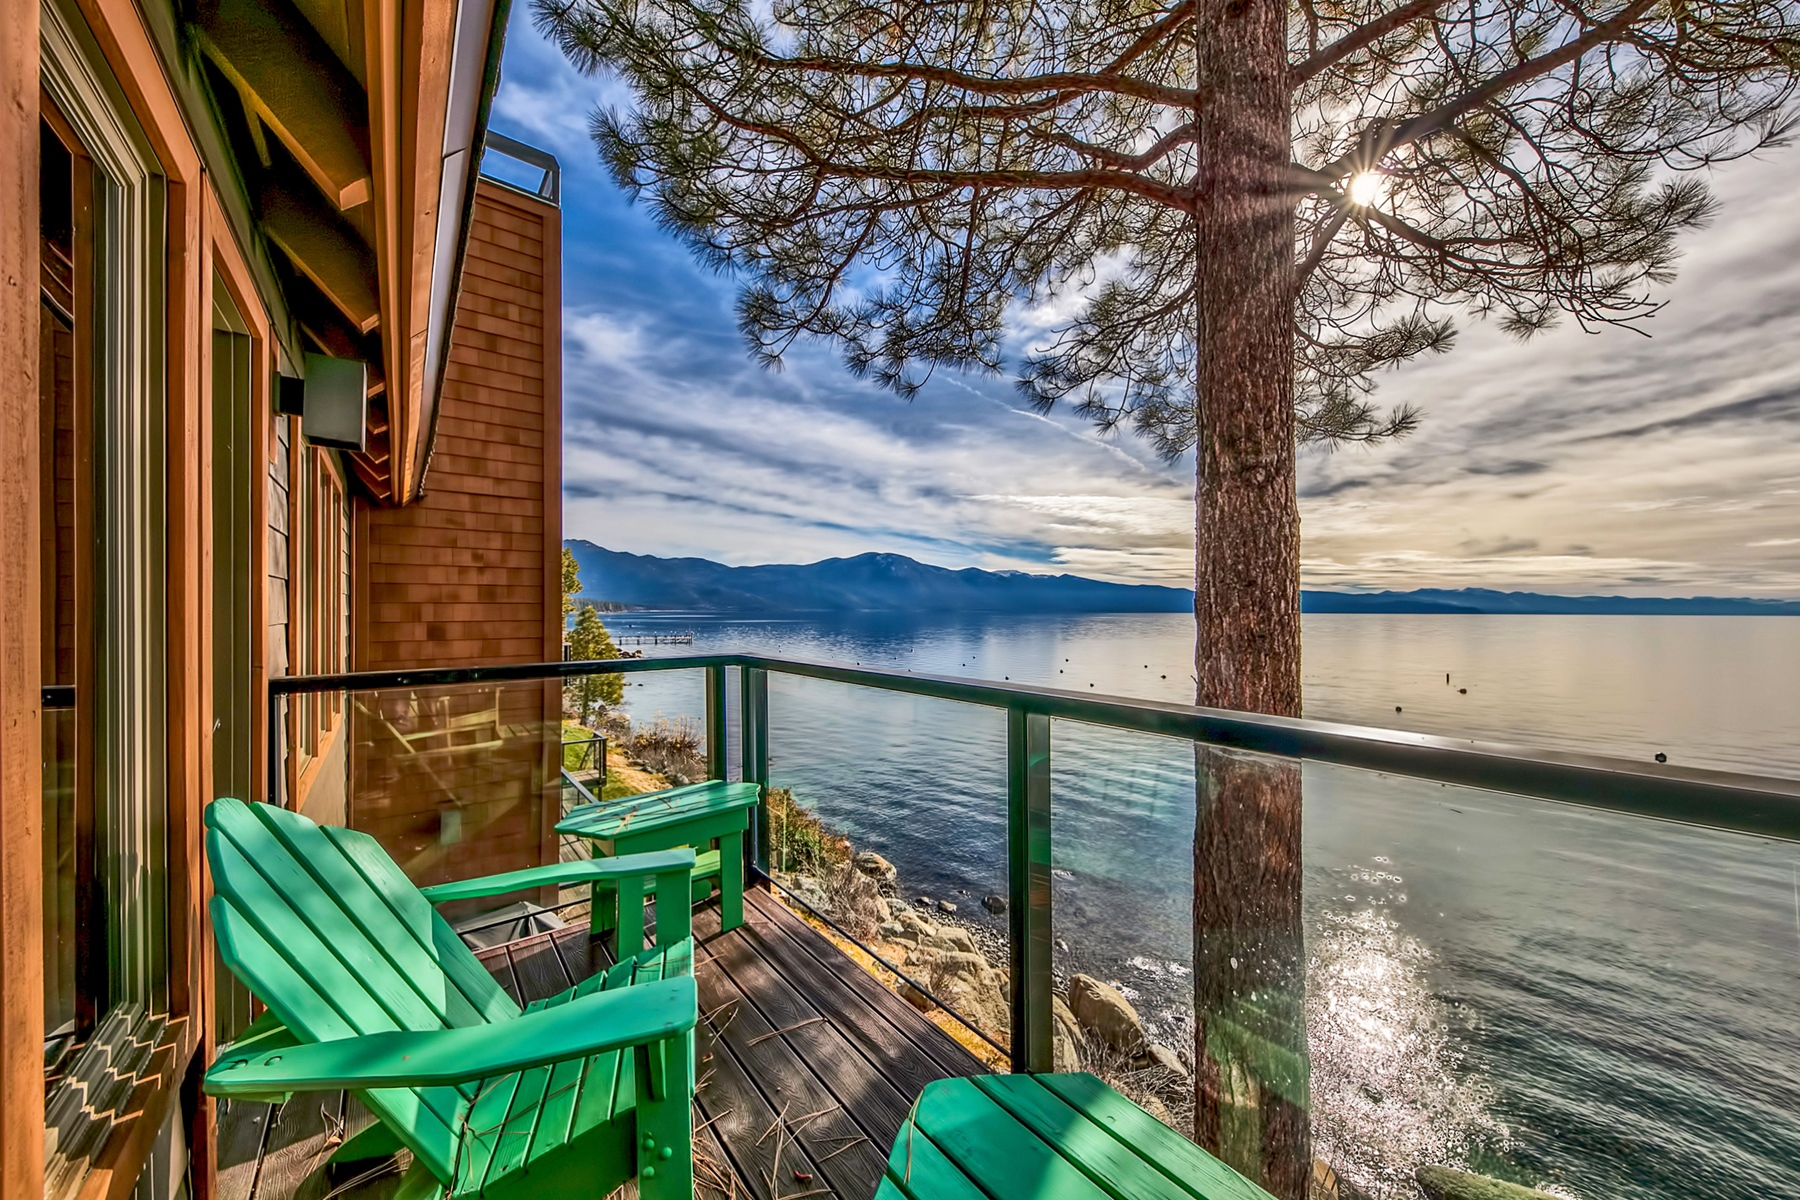 Condominio por un Venta en 501 Lakeshore Blvd. #54, Incline Village, Nevada 501 Lakeshore Blvd. #54 Incline Village, Nevada 89451 Estados Unidos